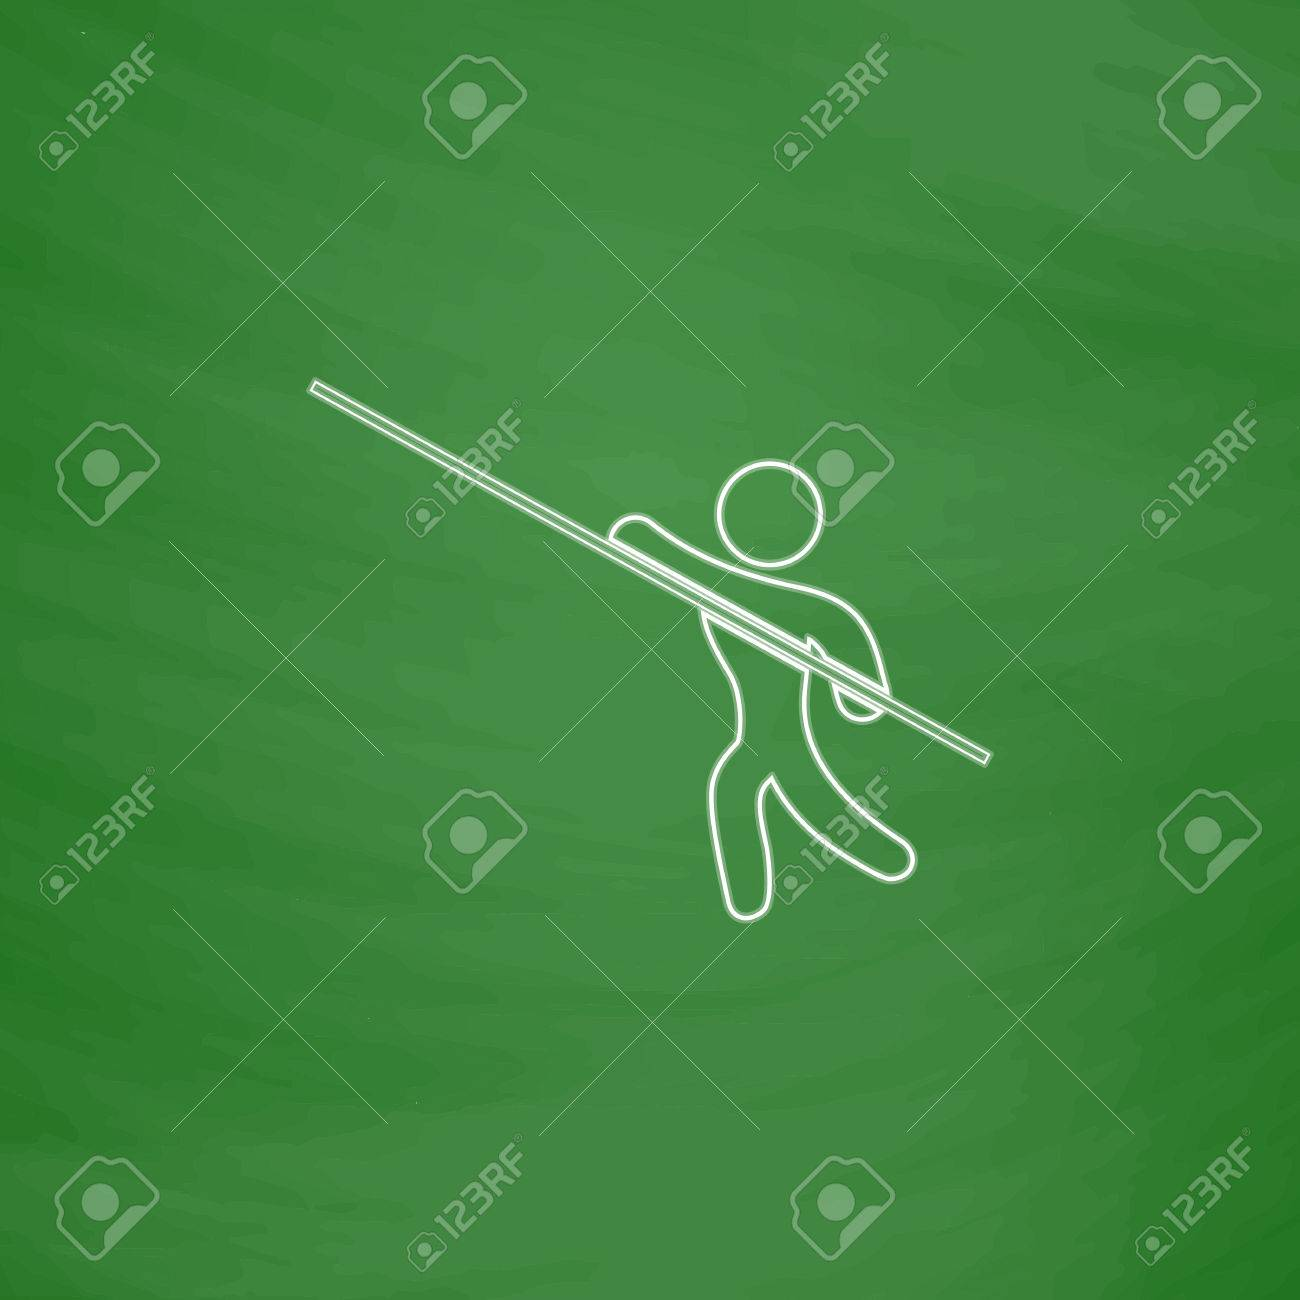 1300x1300 Pole Vault Outline Vector Icon. Imitation Draw With White Chalk